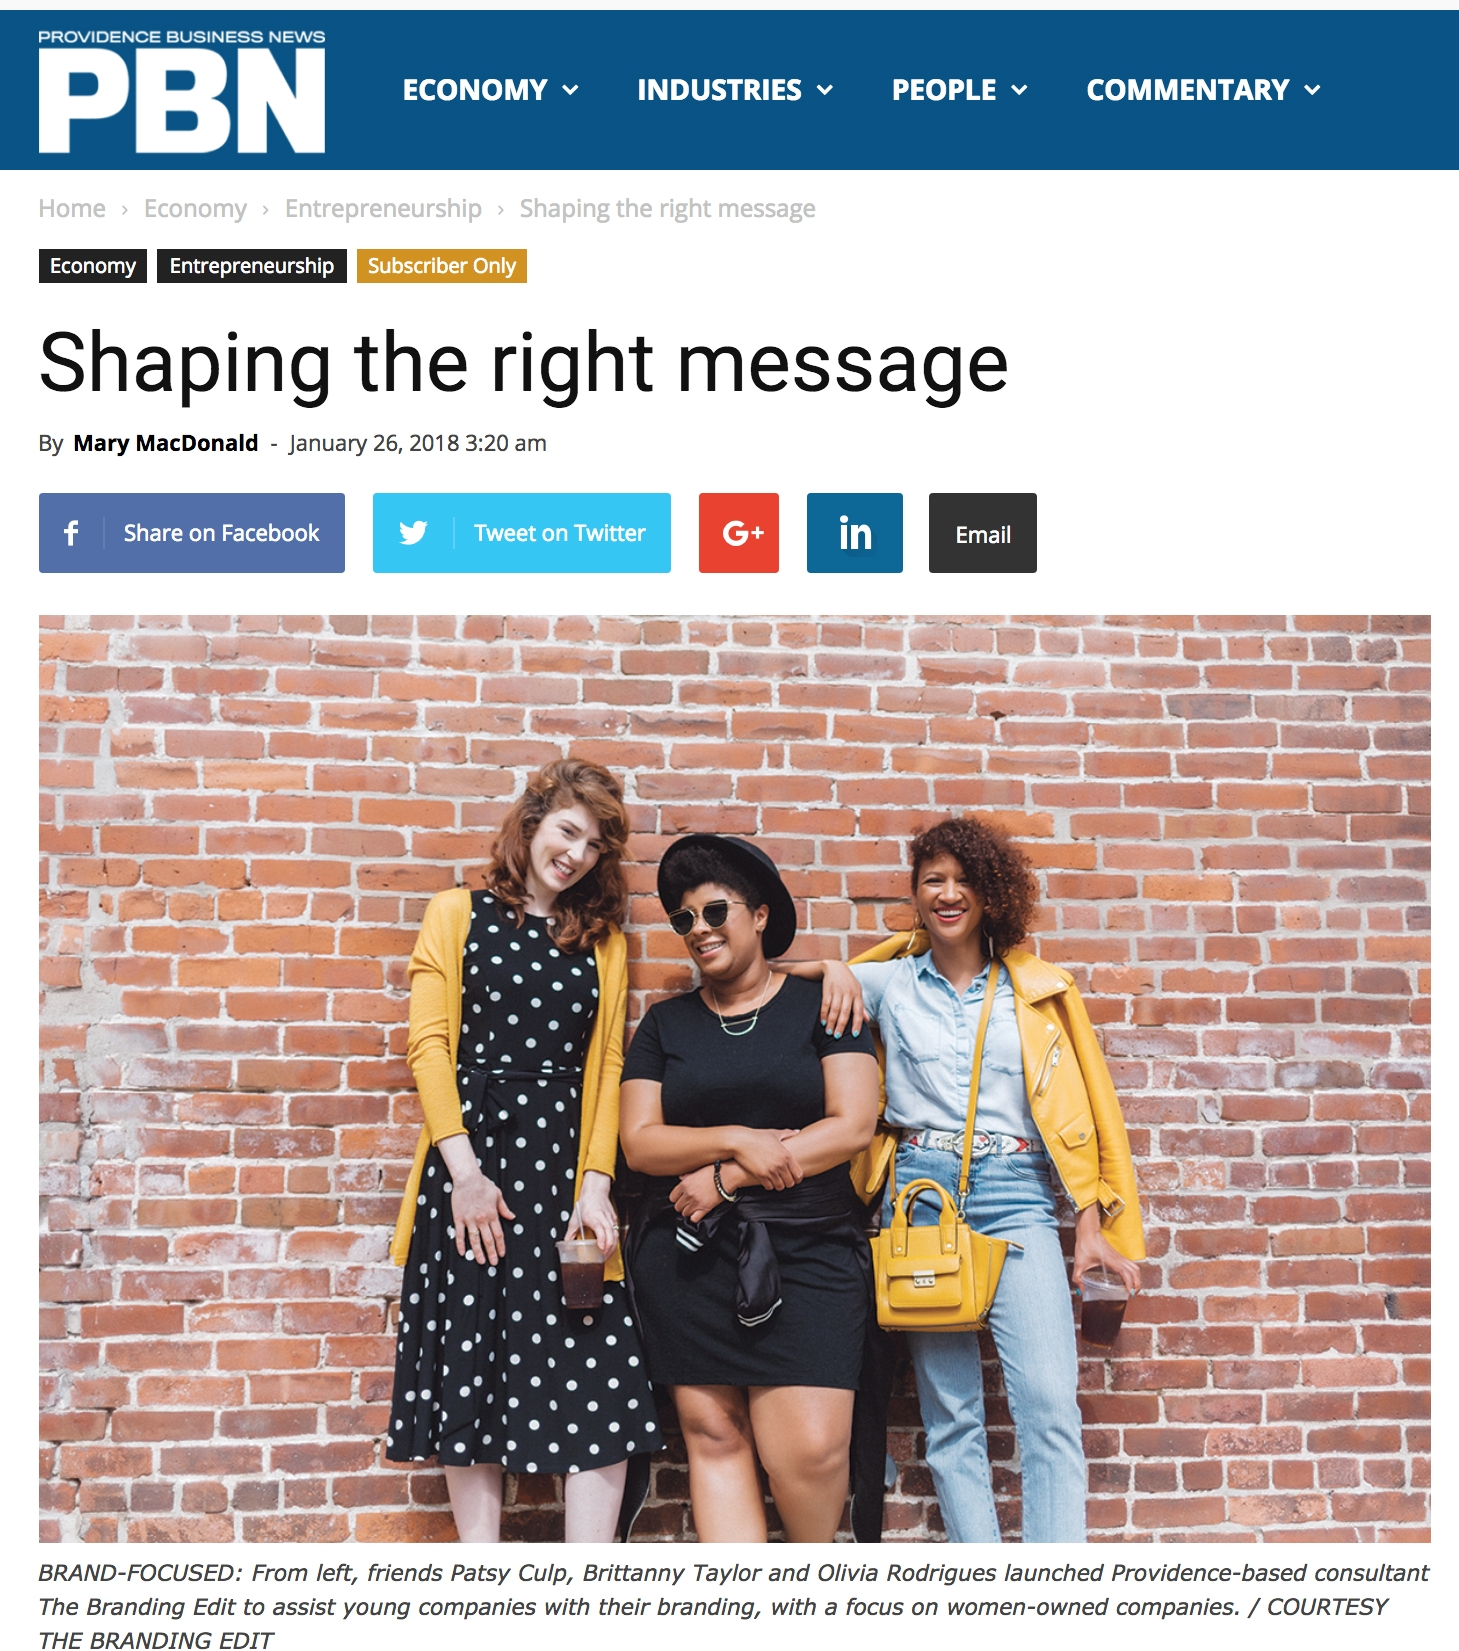 screencapture-pbn-shaping-right-message-1517406287620.jpg